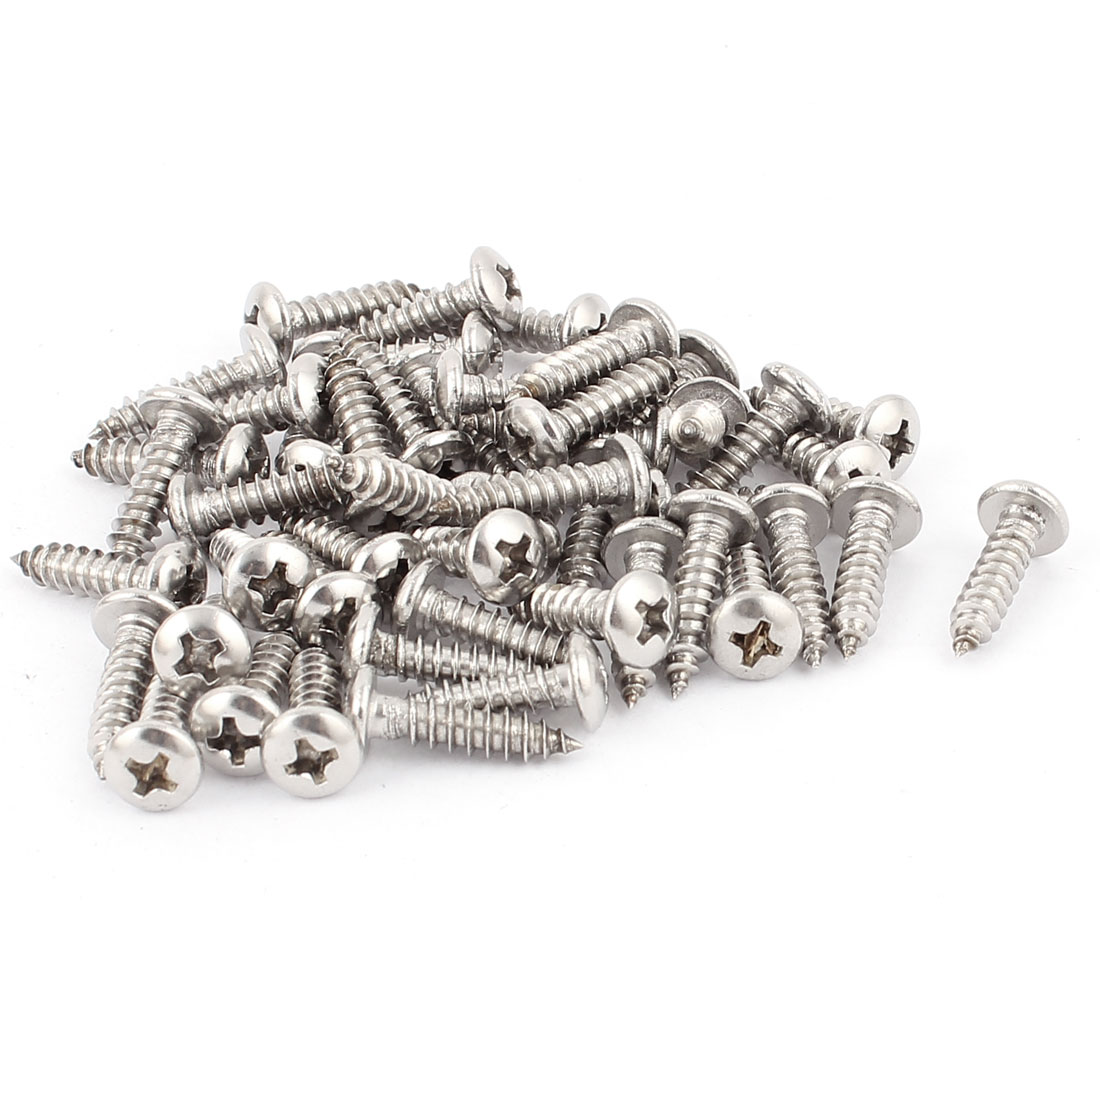 4.2mm x 18mm Pan Head Phillips Self Tapping Screw Fasteners Silver Tone 60 Pcs